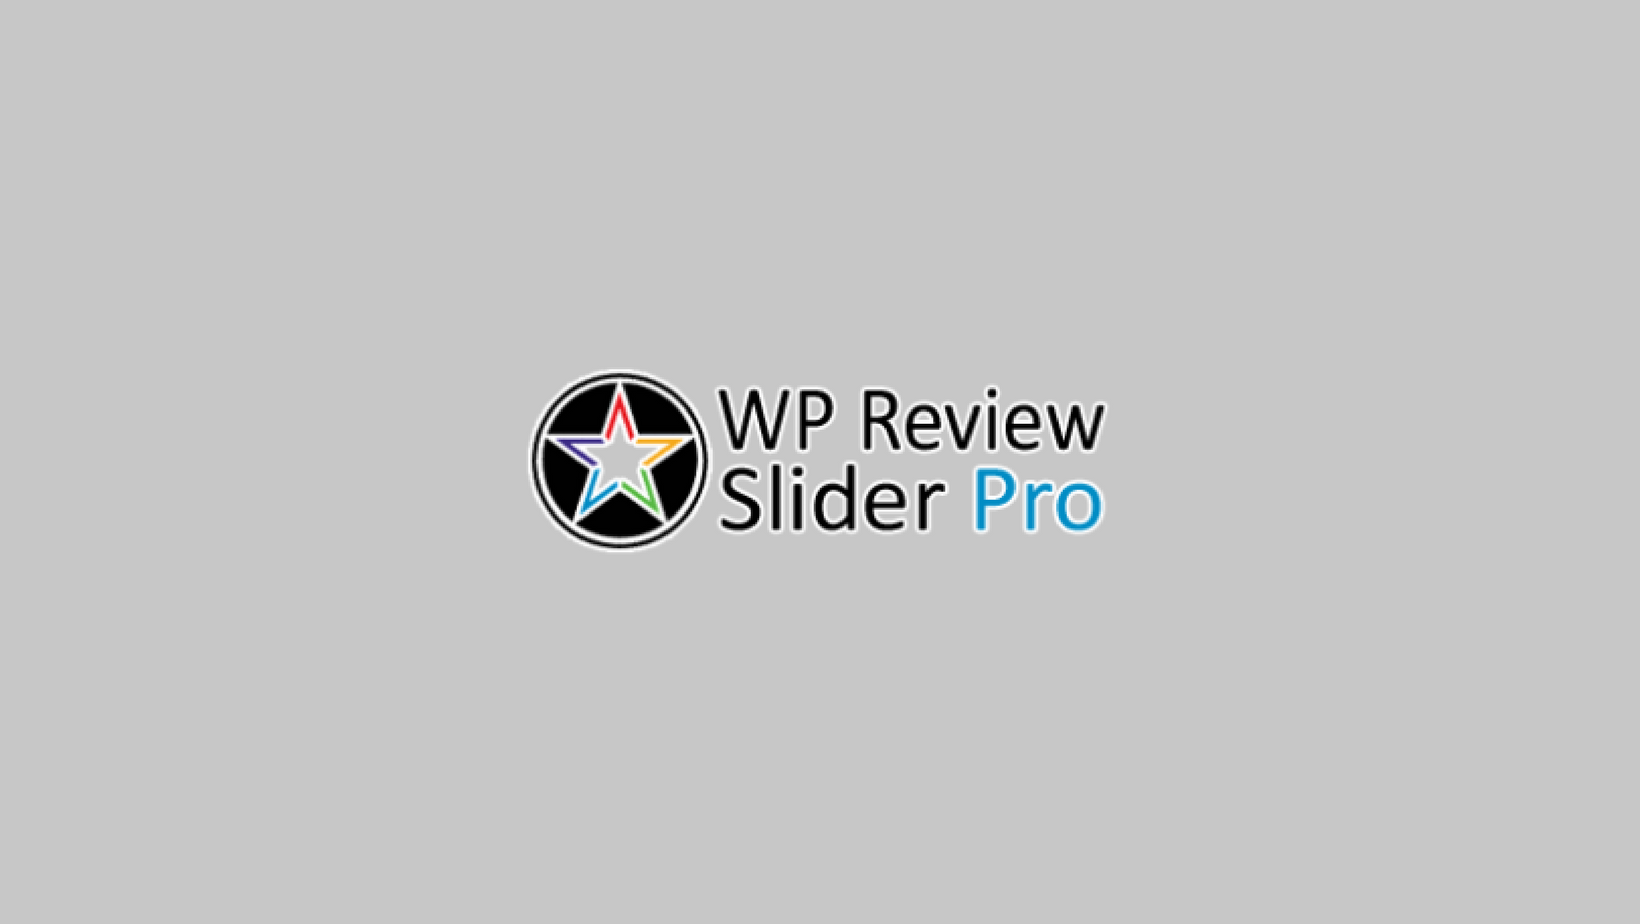 Wp Review Slider Pro Review Display Facebook Google And Yelp Reviews On Wordpress Yelp Reviews How To Start A Blog Reviews